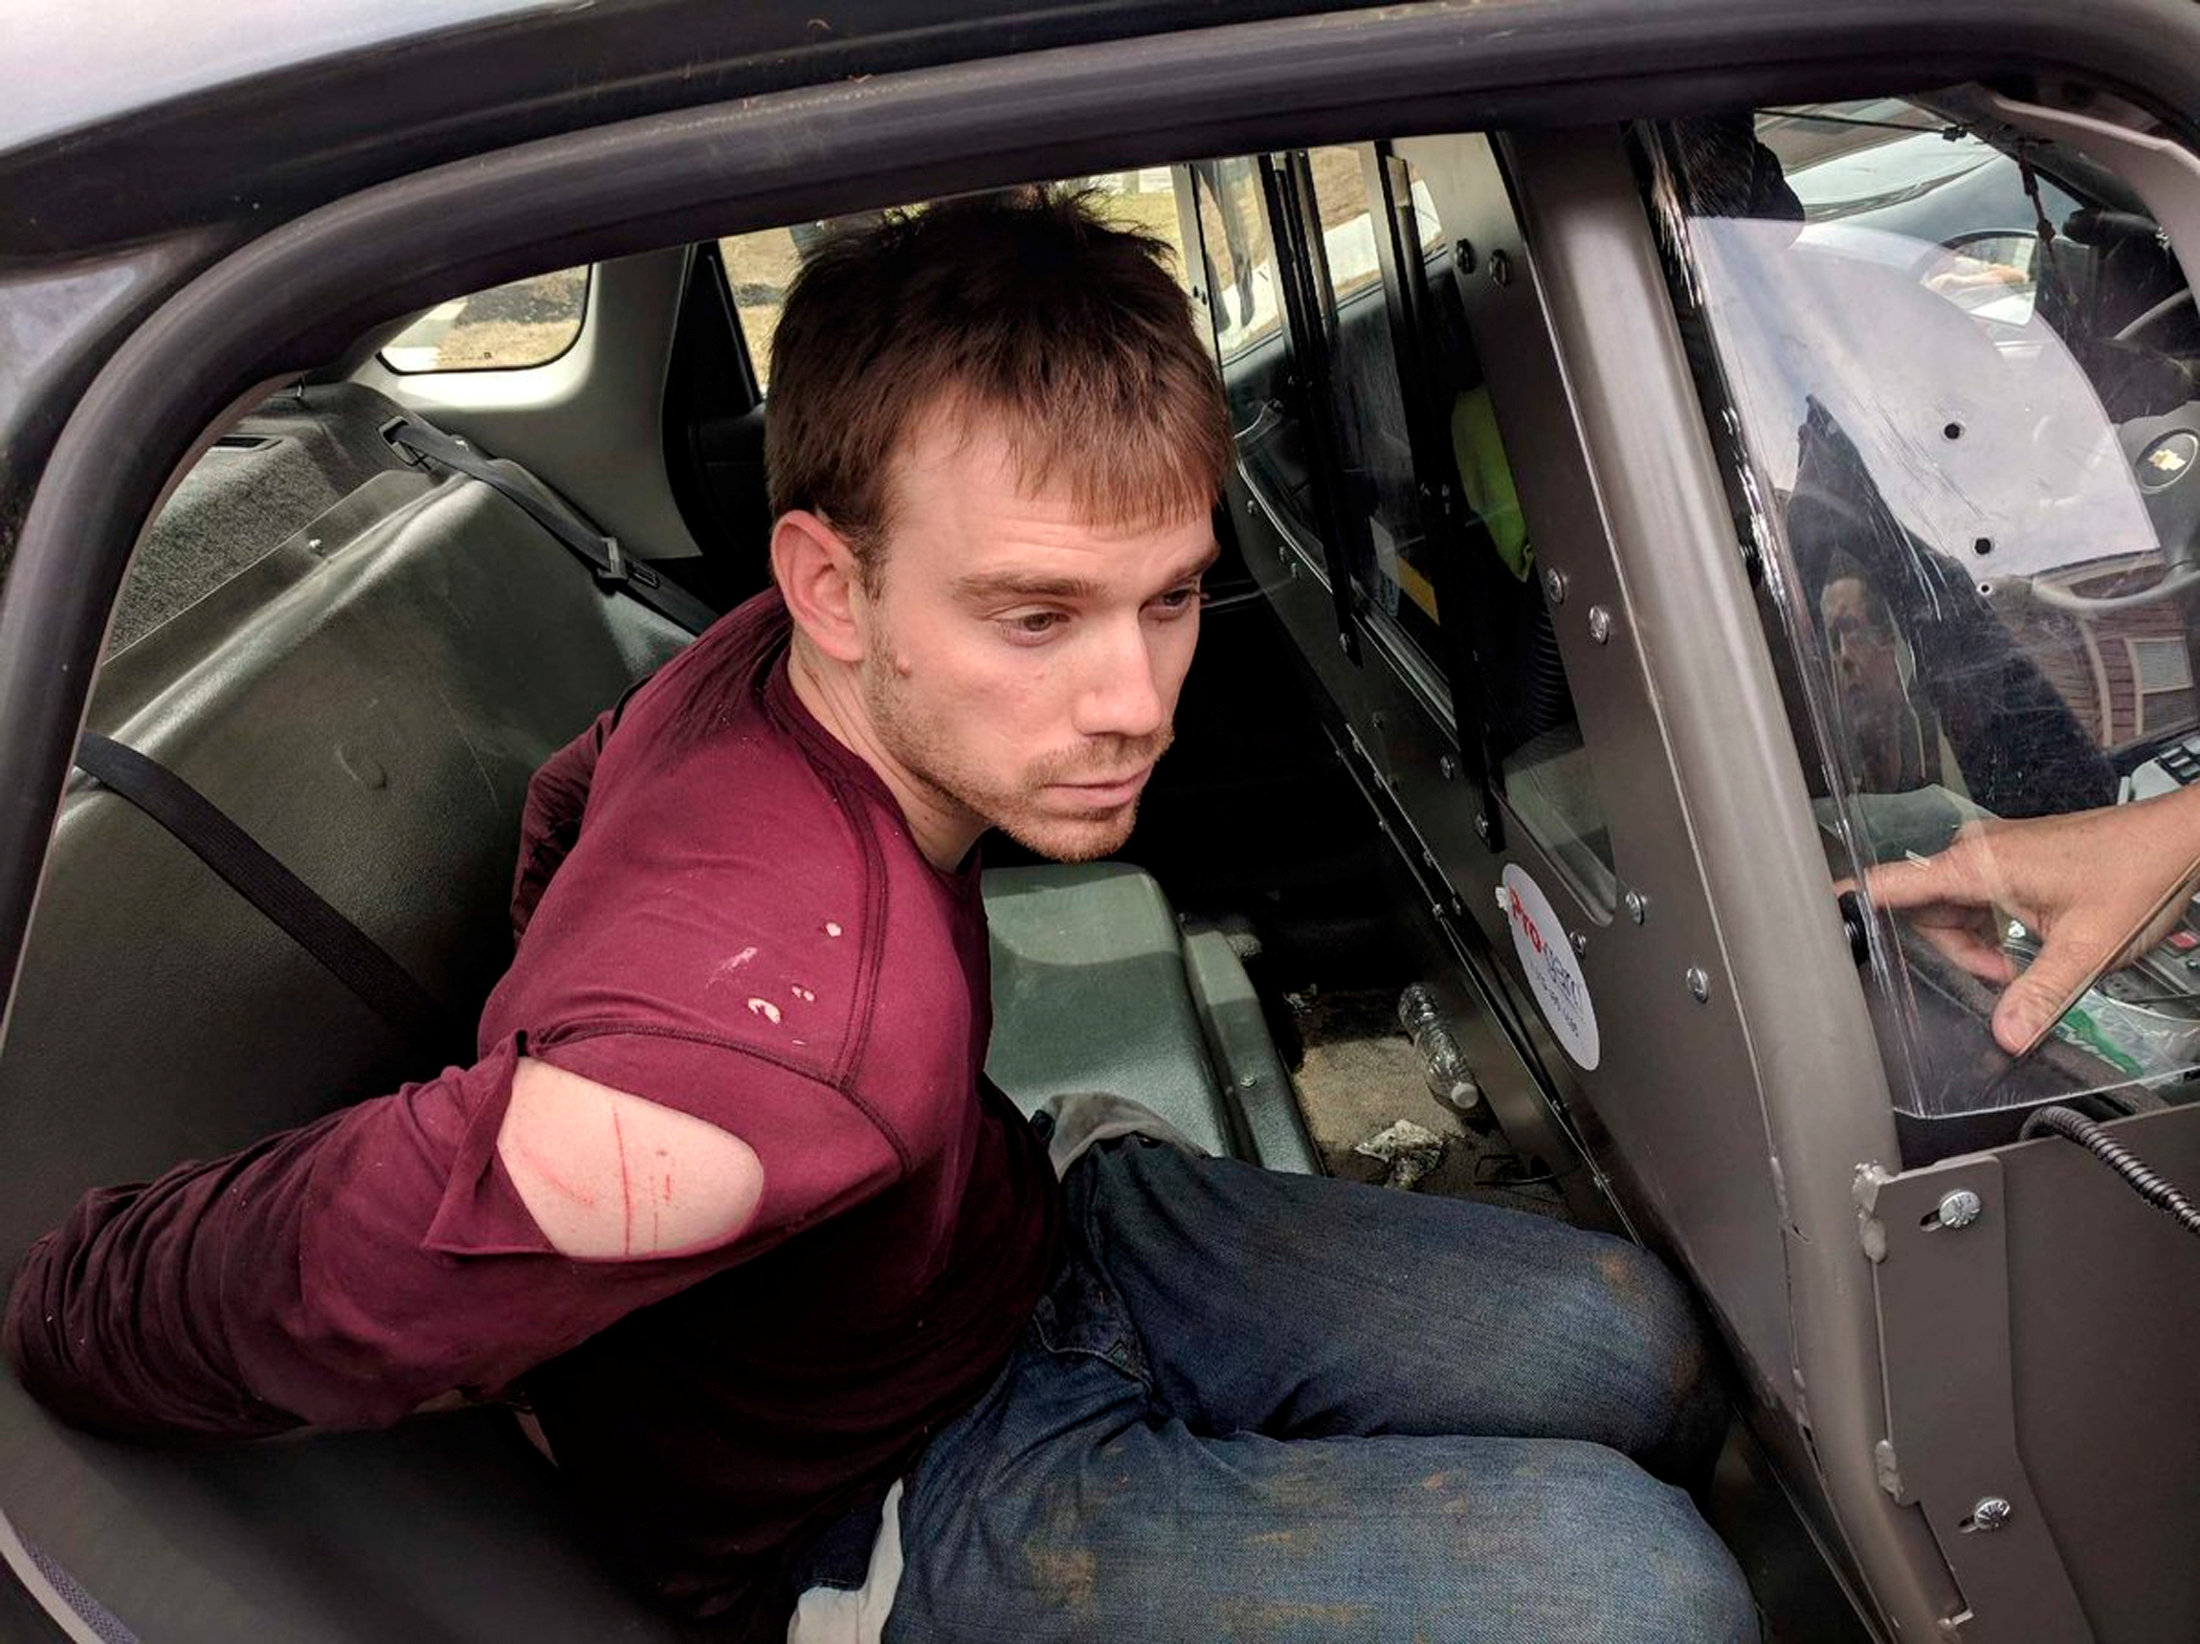 Travis Reinking, the suspect in a Waffle House shooting in Nashville, is under arrest by Metro Nashville Police Department in a wooded area in Antioch, Tennessee, U.S., April 23, 2018. Courtesy Metro Nashville Police Department/Handout via REUTERS